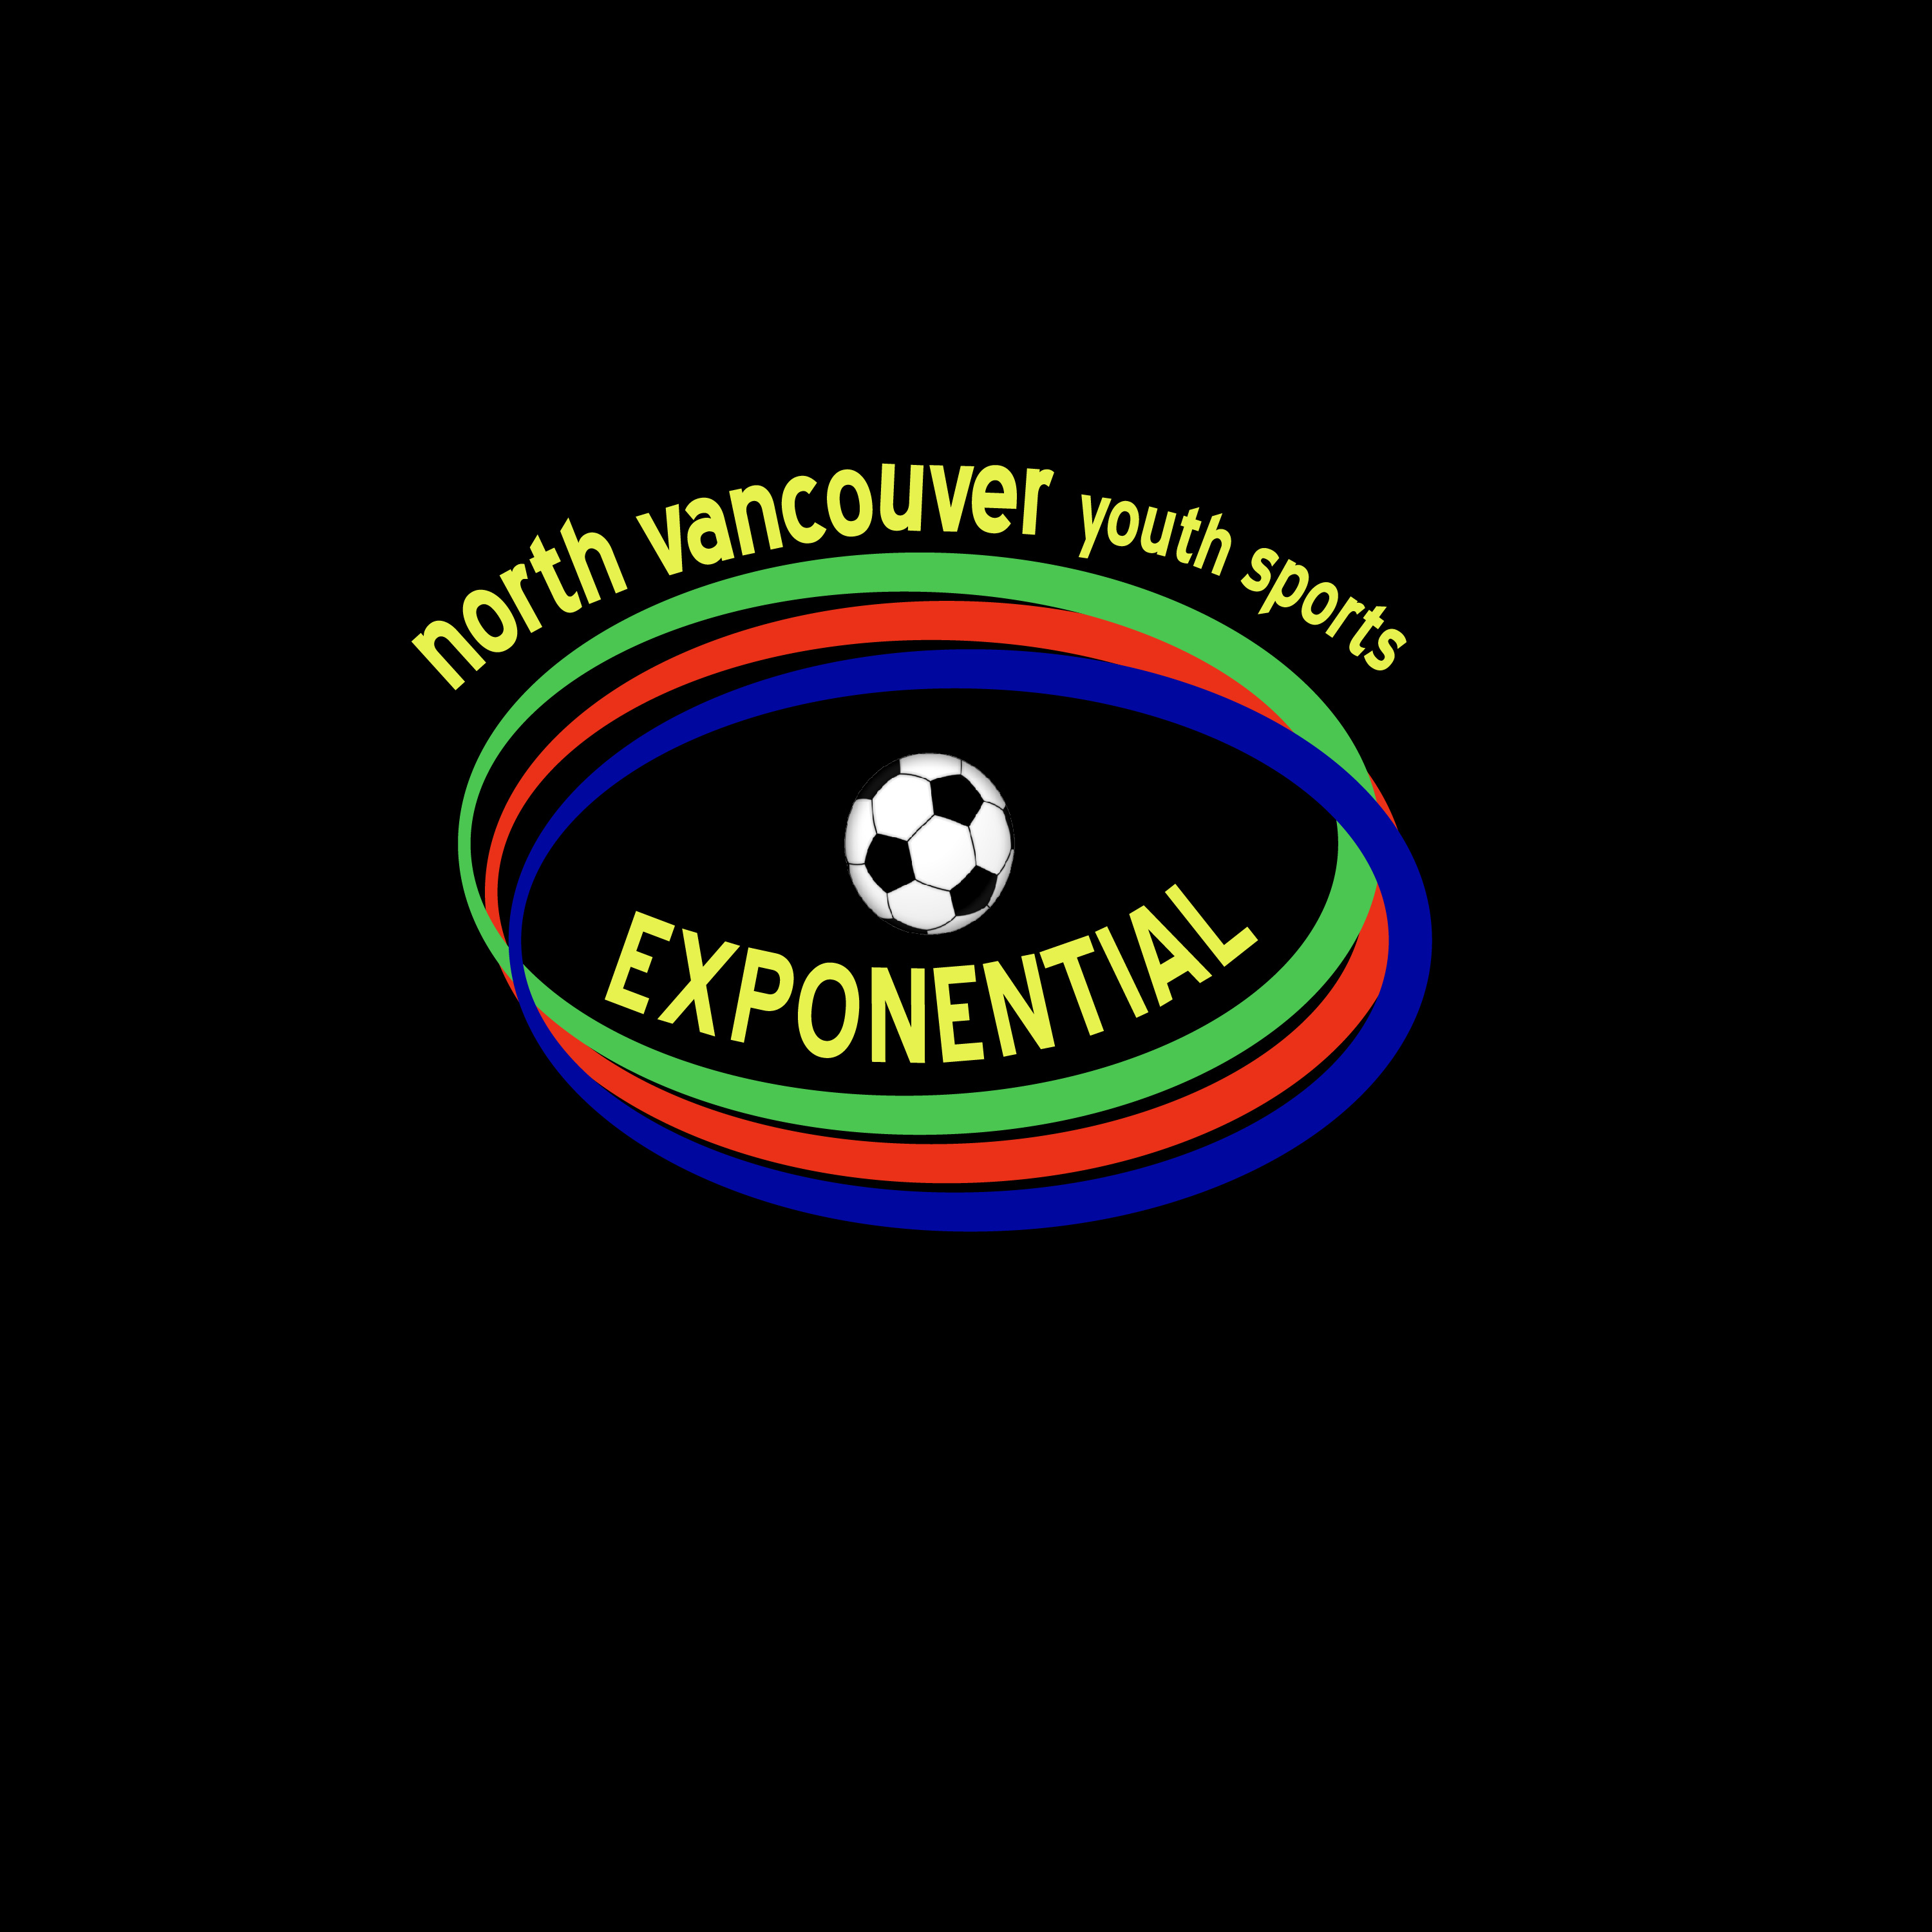 Logo Design by Nancy Grant - Entry No. 26 in the Logo Design Contest Fun Logo Design for North Vancouver Youth Sports Exponential.